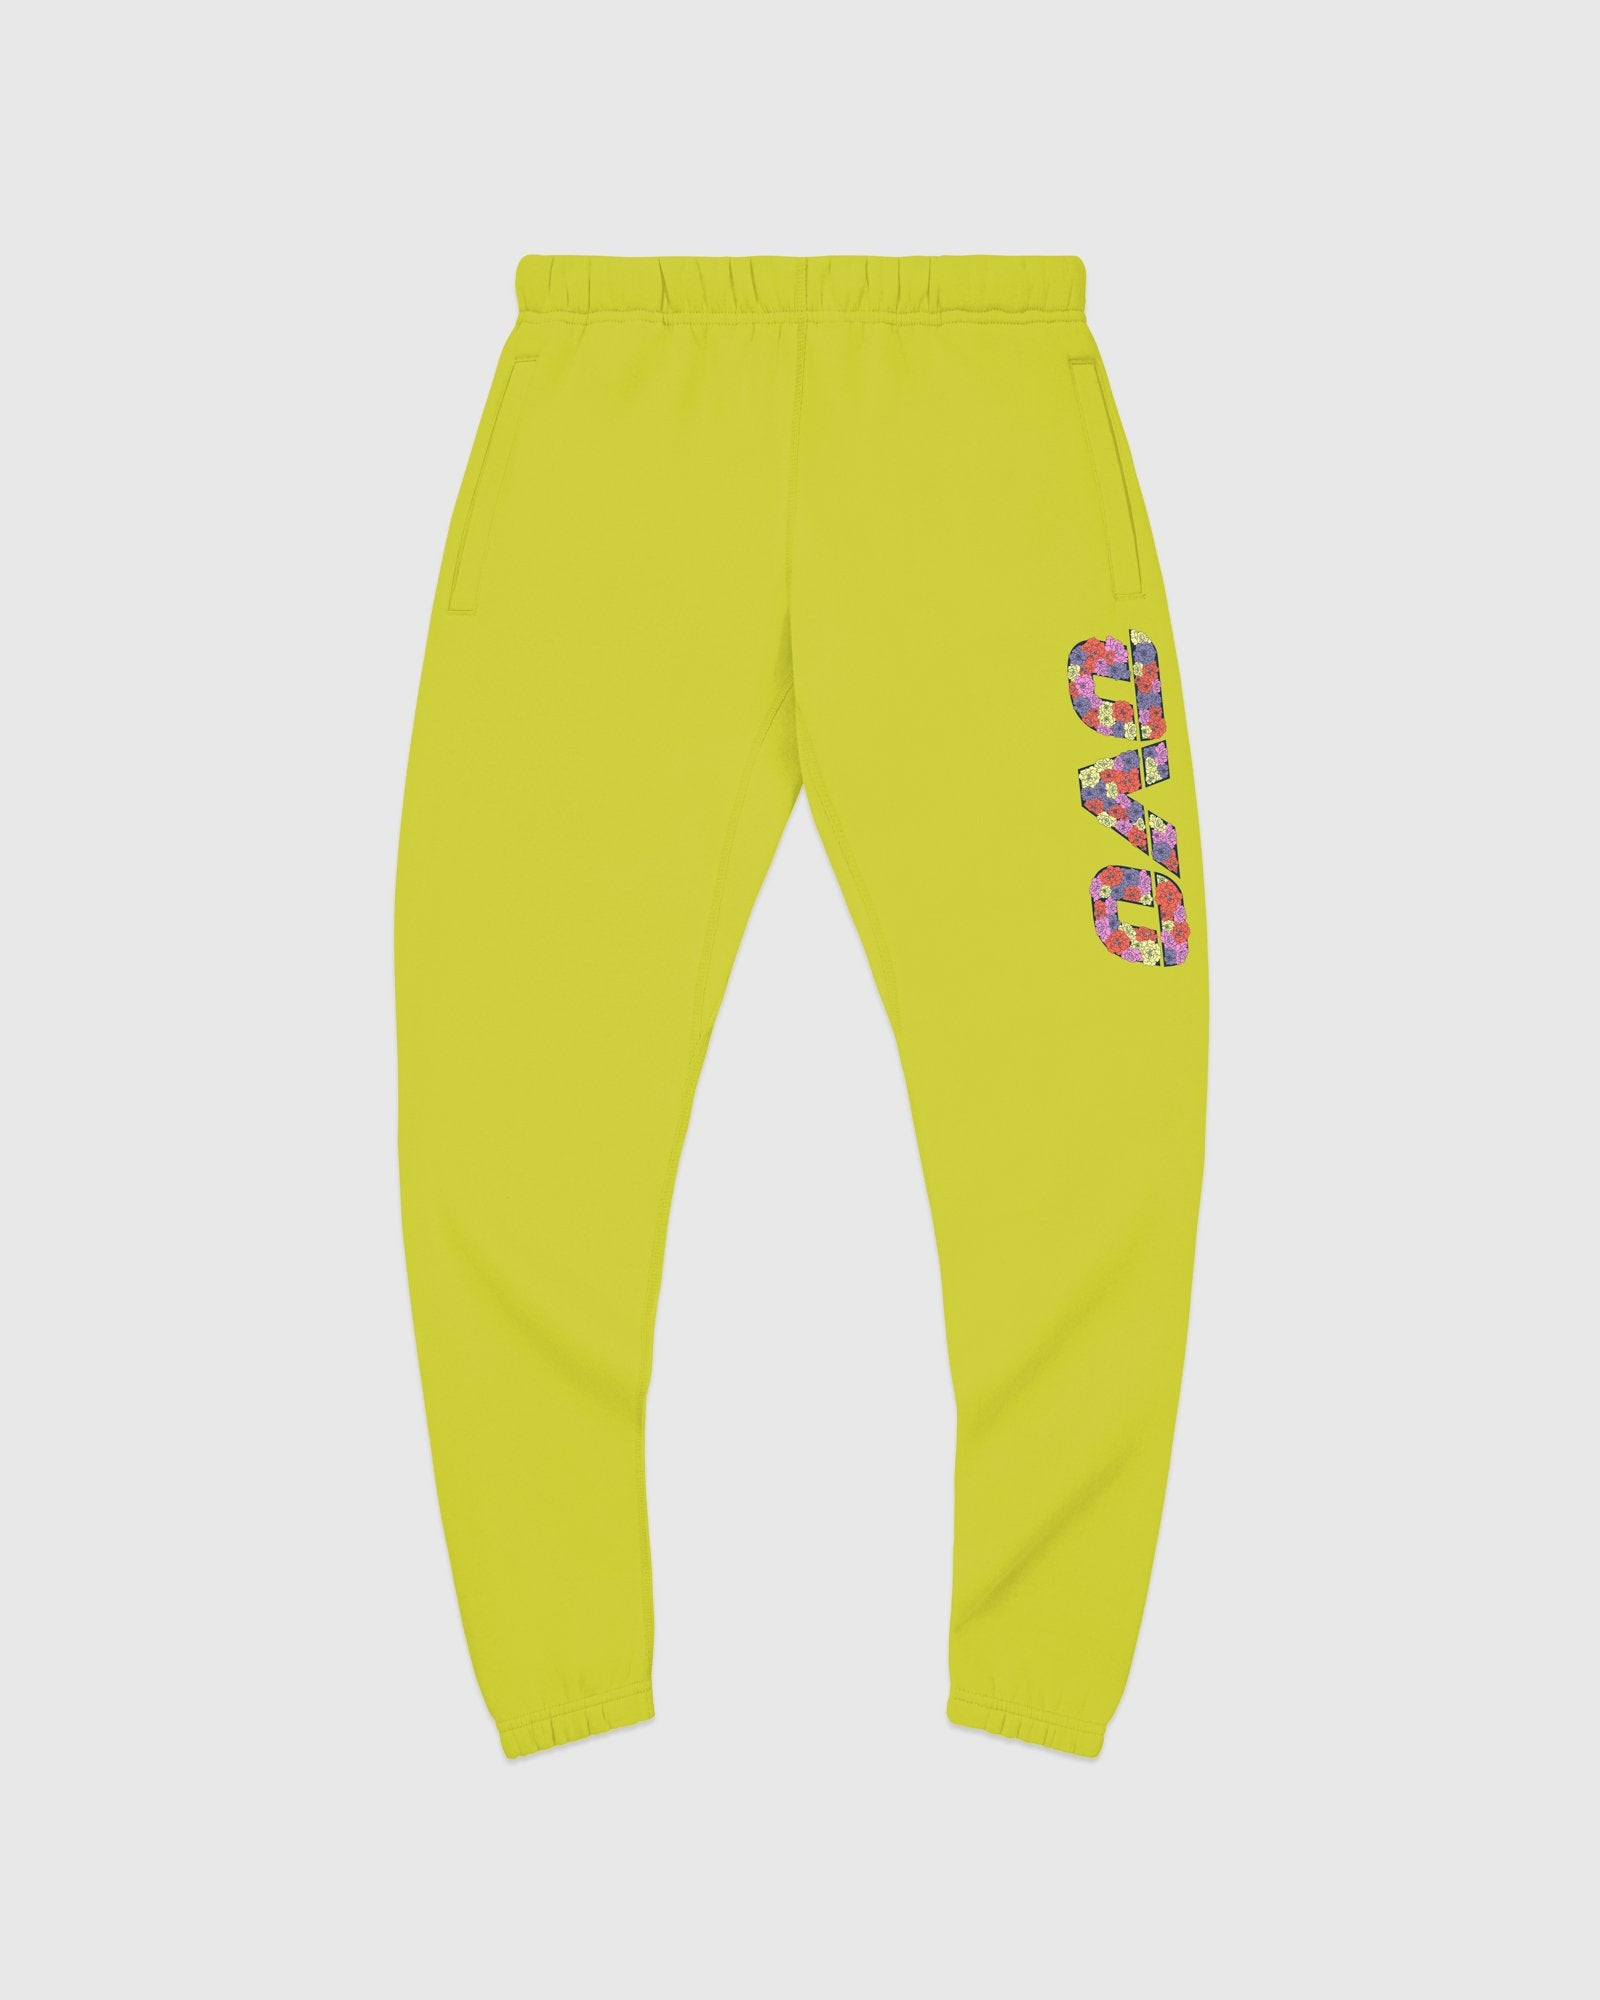 CELEBRATION RUNNER SWEATPANT - LIME IMAGE #1